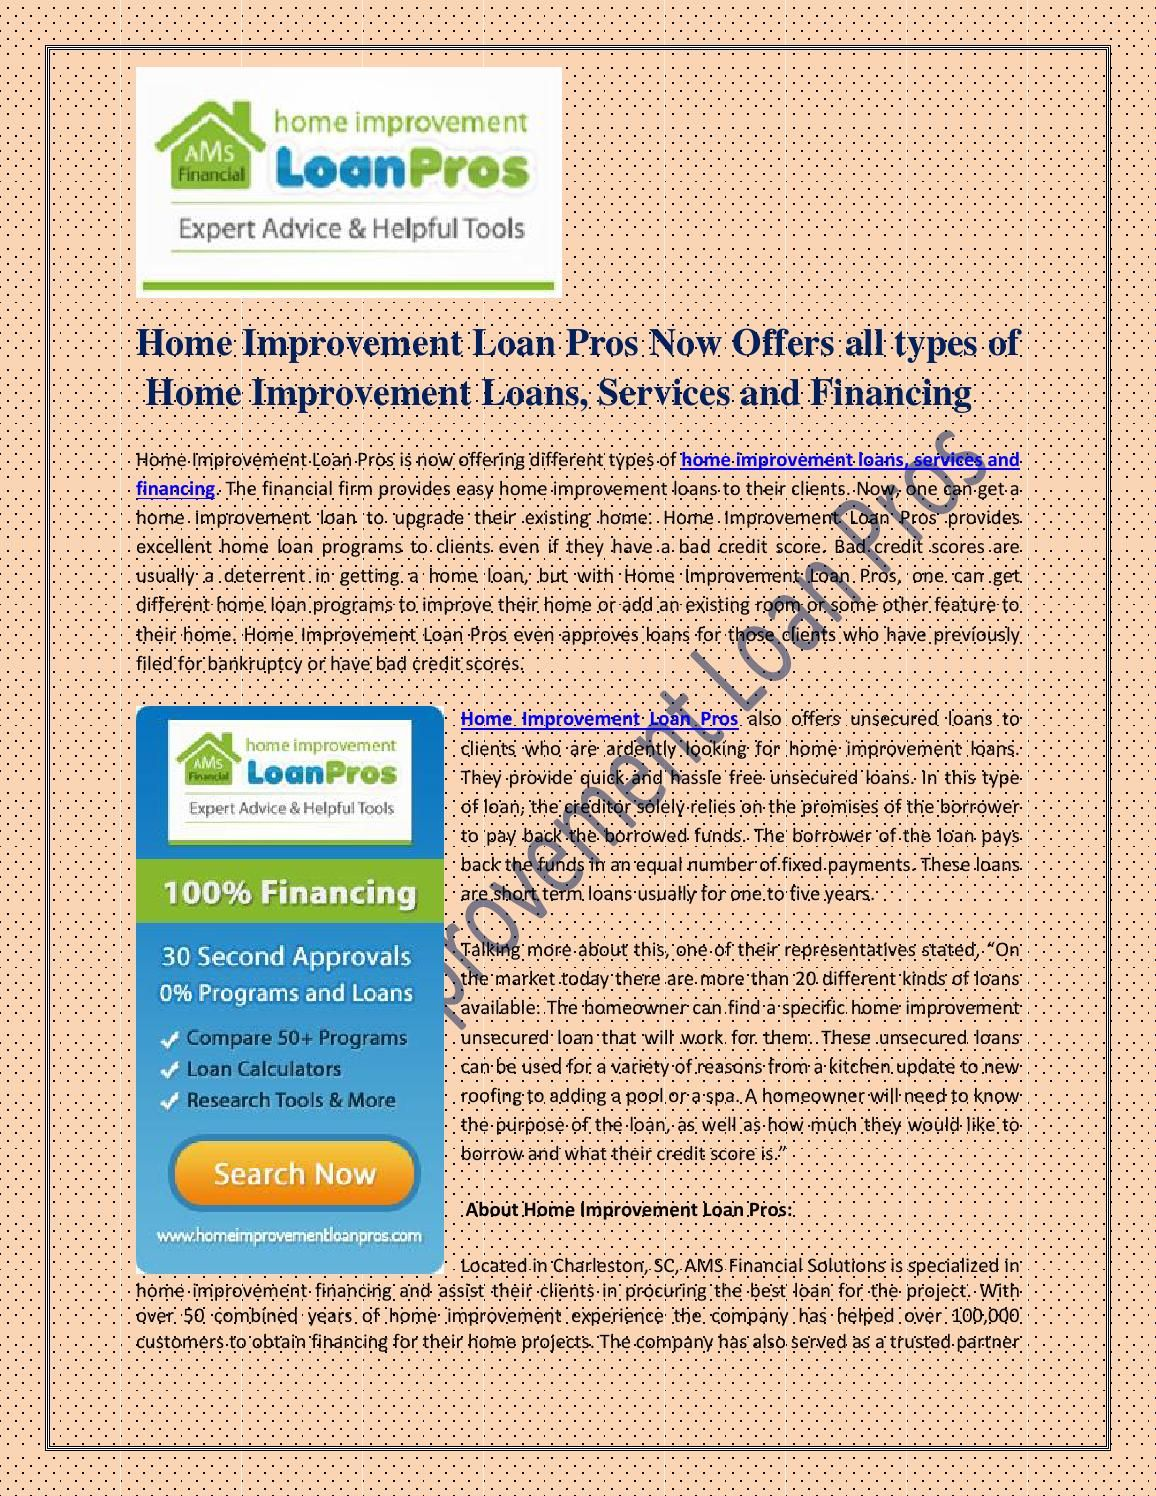 Home improvement loan pros now offers all types of home improvement loans   services and financing. Home improvement loan pros now offers all types of home